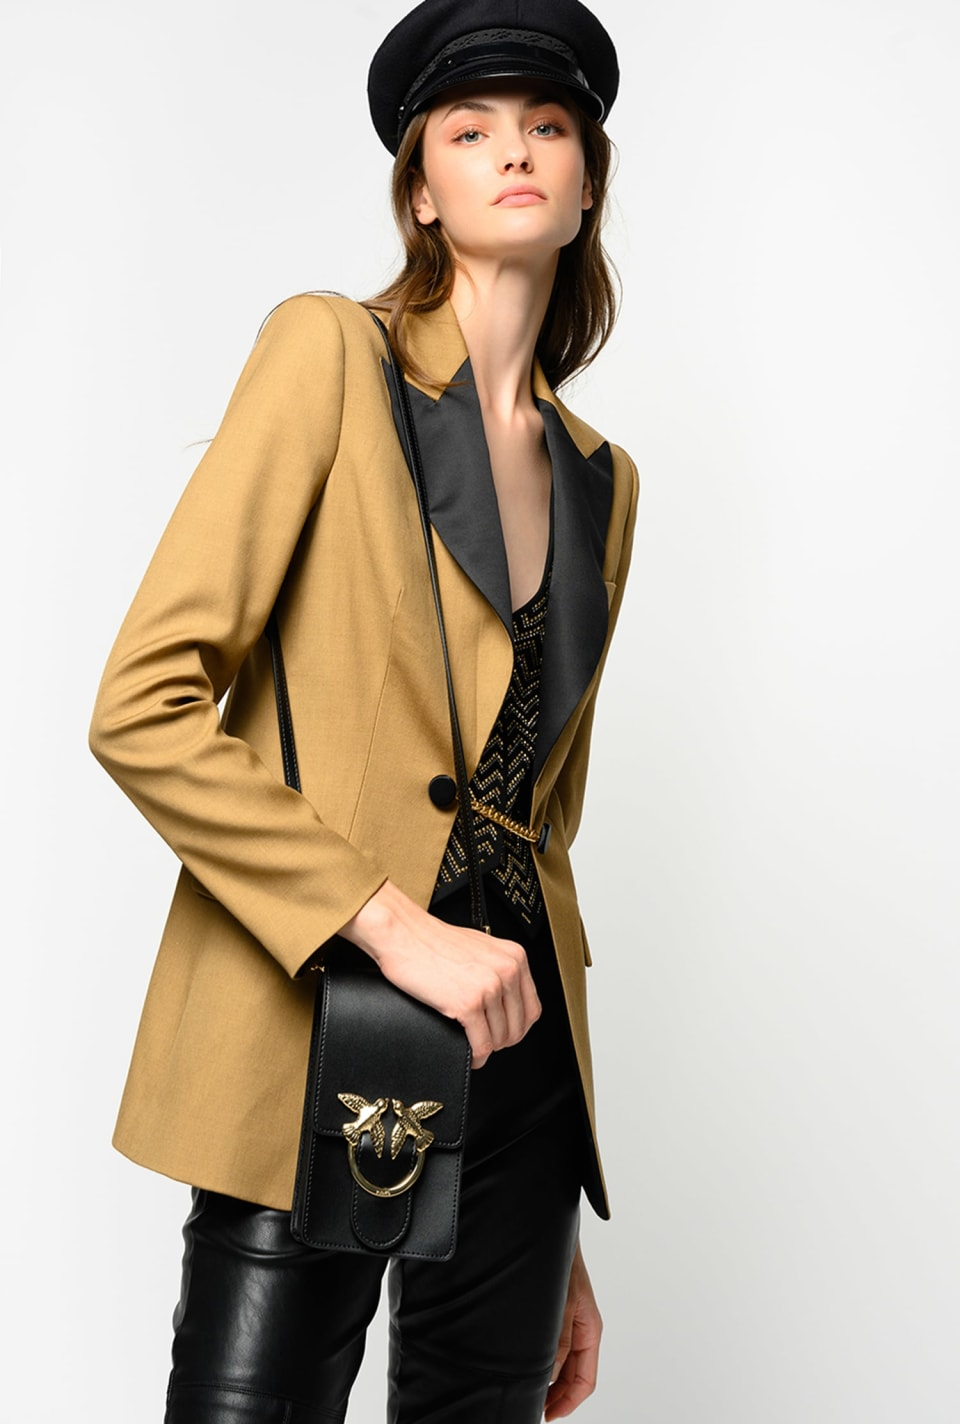 Blazer with waistcoat embellished with metal rhinestones - Pinko